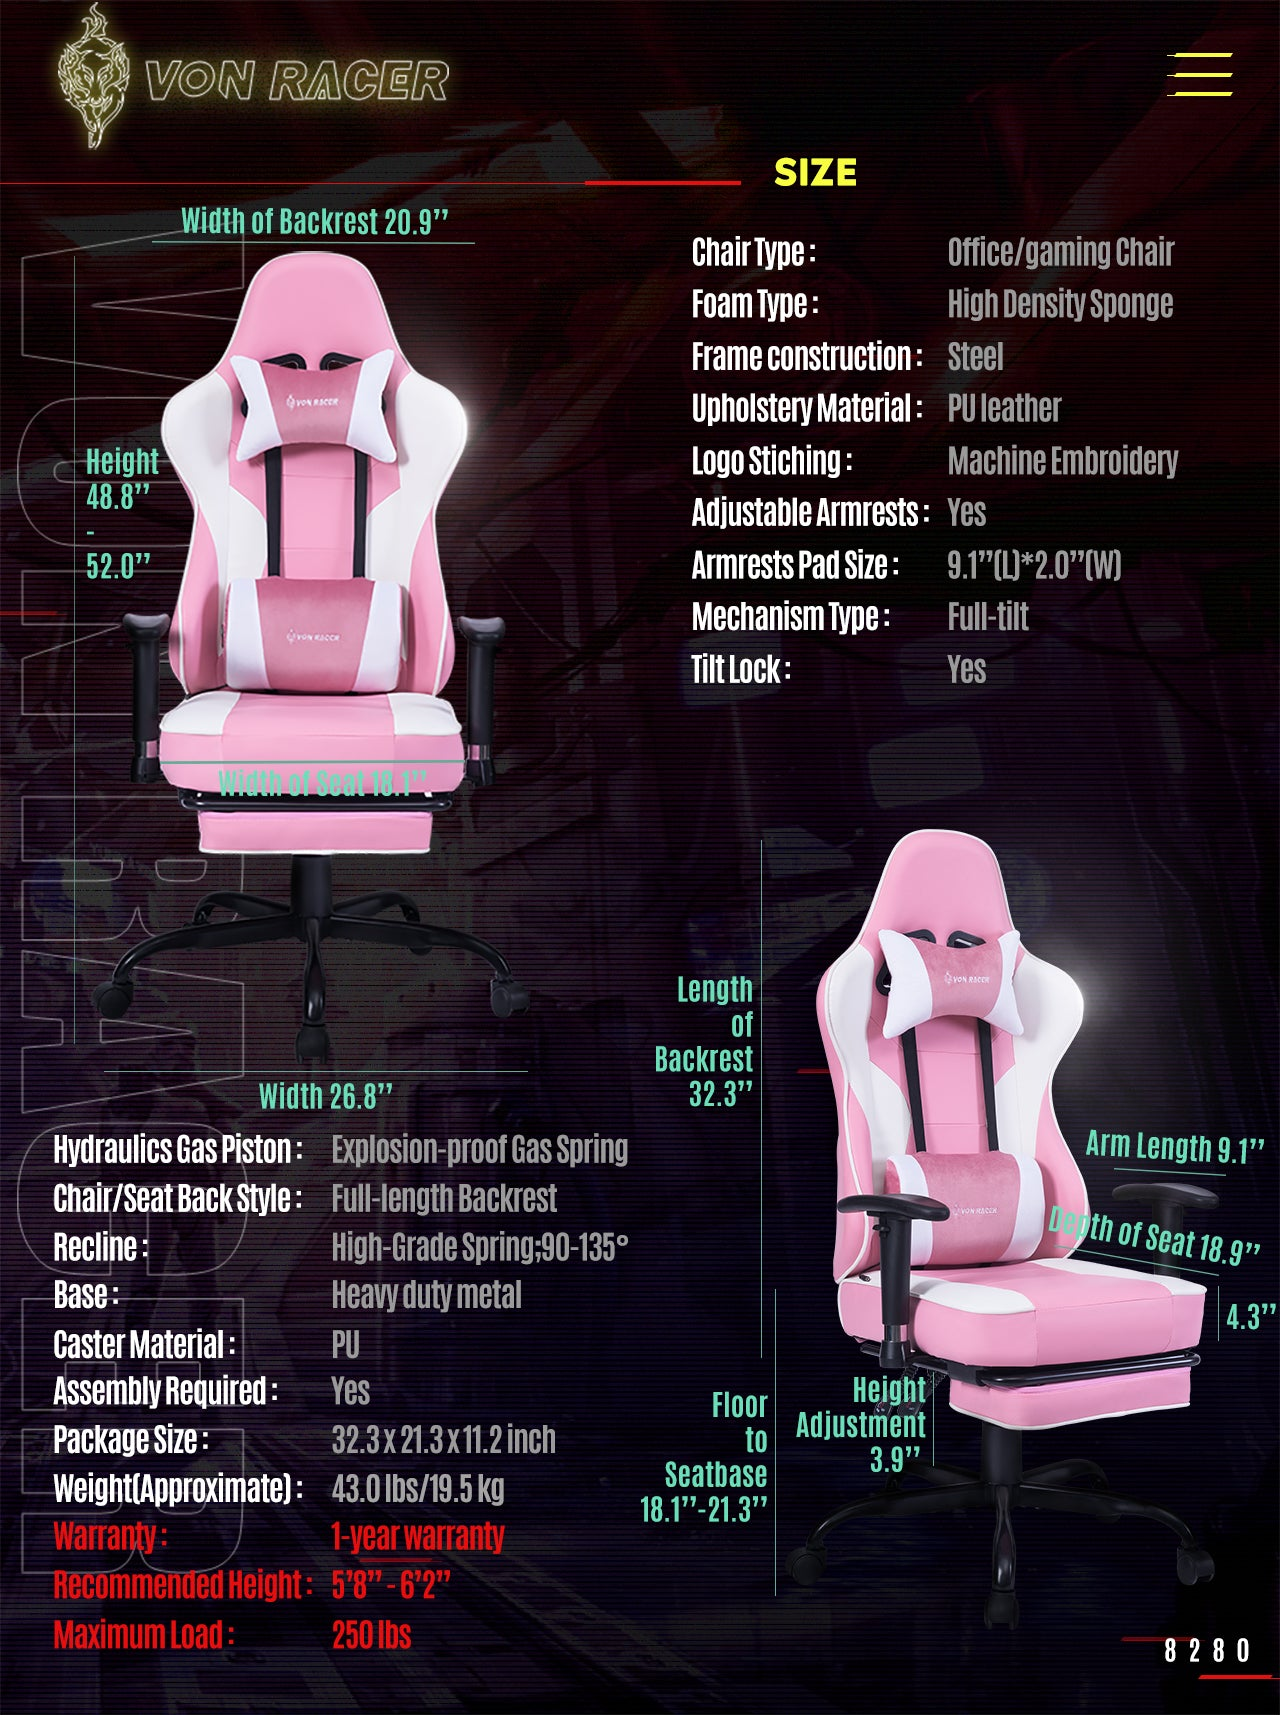 VON RACER ERGONOMIC GAMING CHAIR 8280 PINK SPECIFICATION